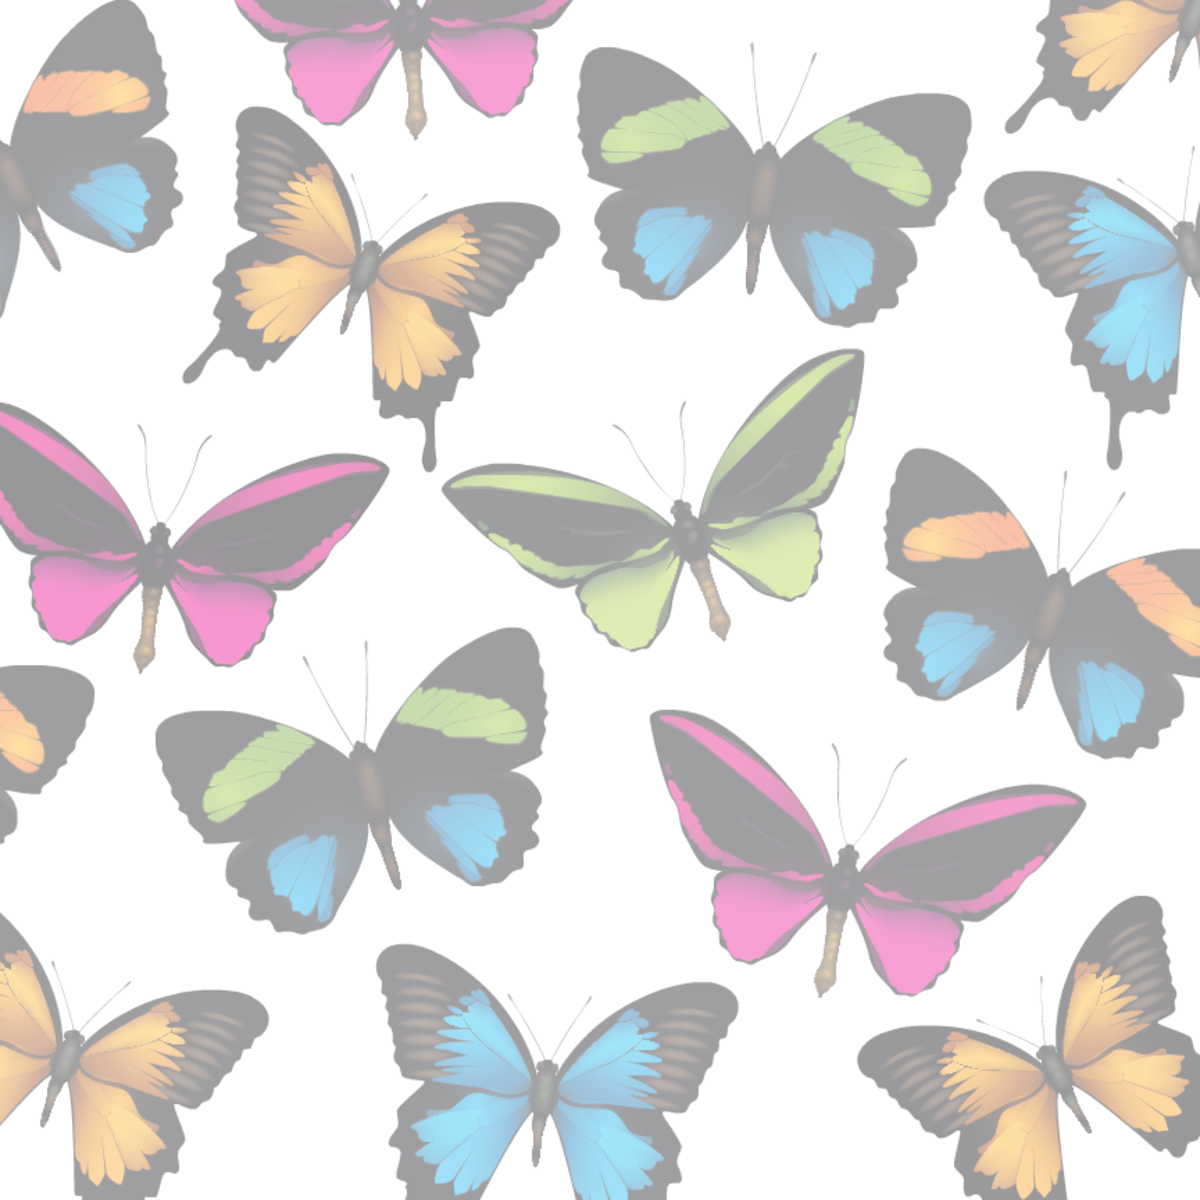 Faded butterfly scrapbook paper -- white background tint